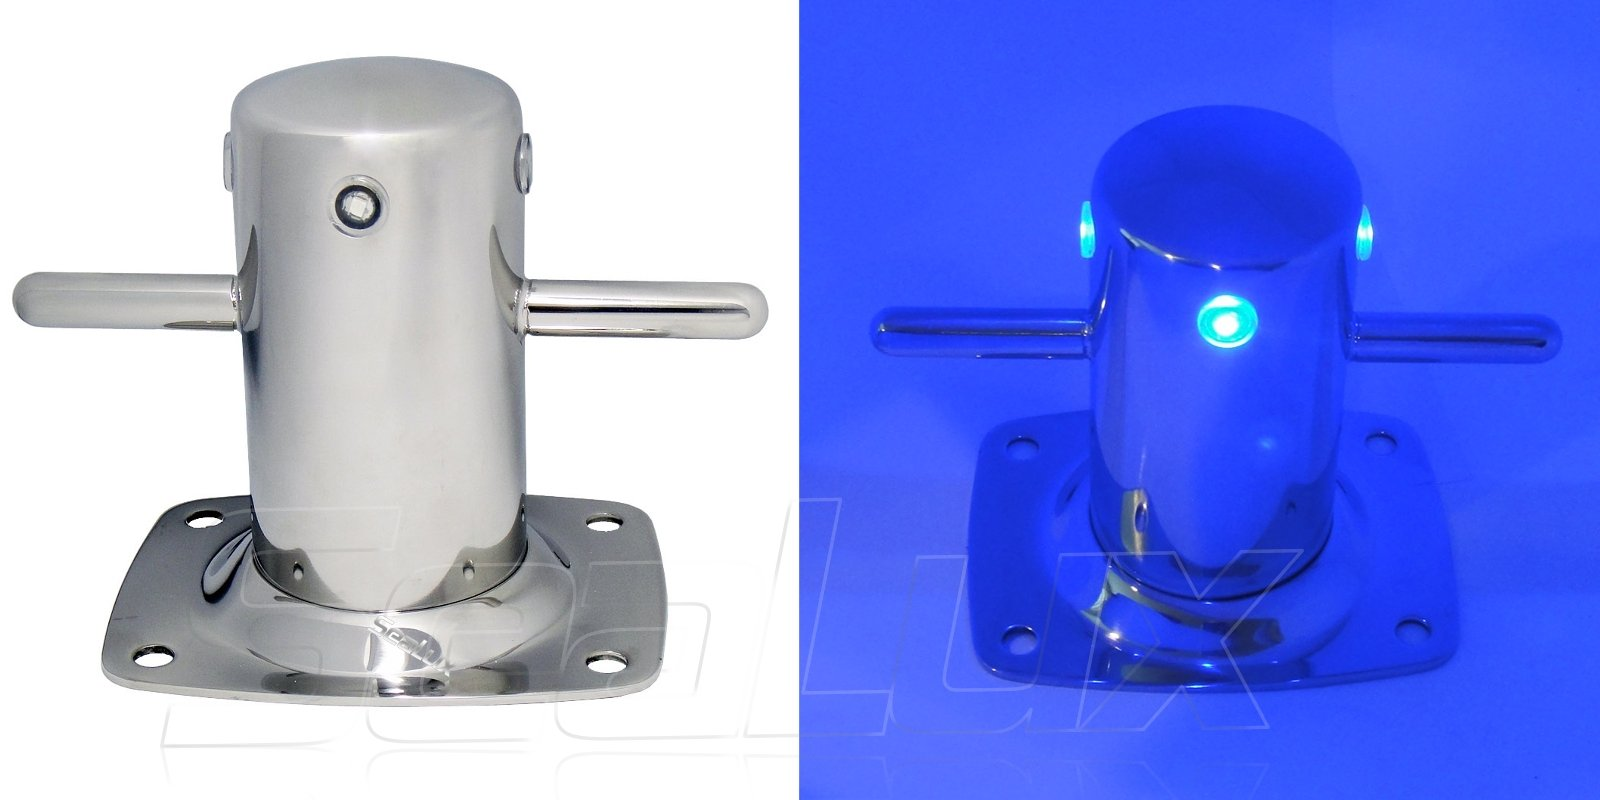 SeaLux Marine Mooring Bollard with integrated BLUE LED lighting 316 Stainless Steel 6-1/2'' Samson Post Cross Cleat for Yacht/Boat/Dock